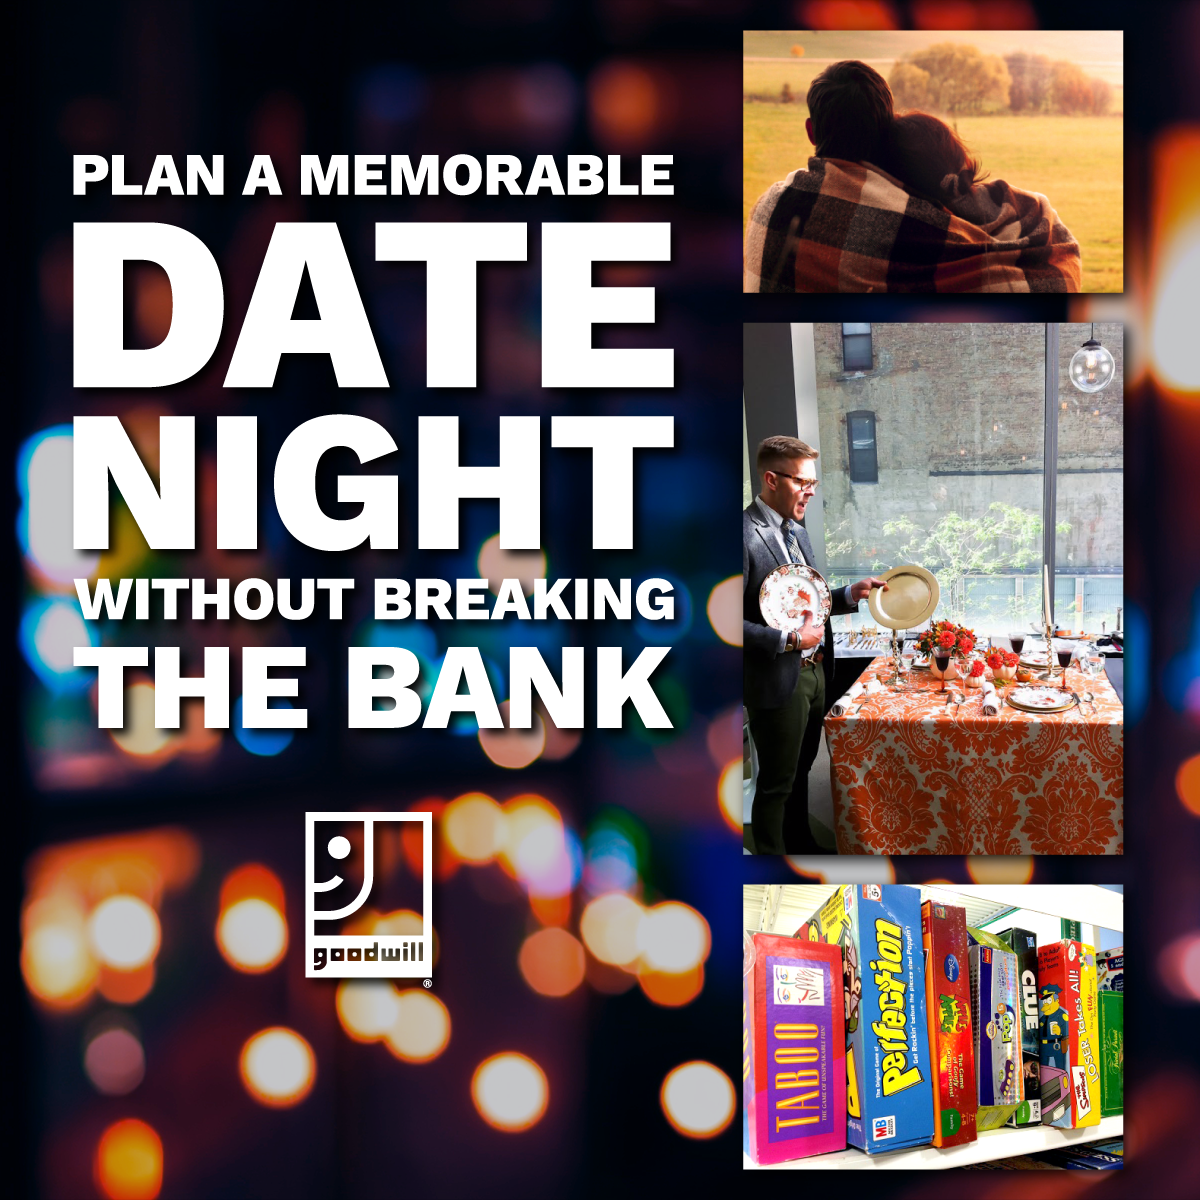 Plan a Memorable Date Night Without Breaking the Bank